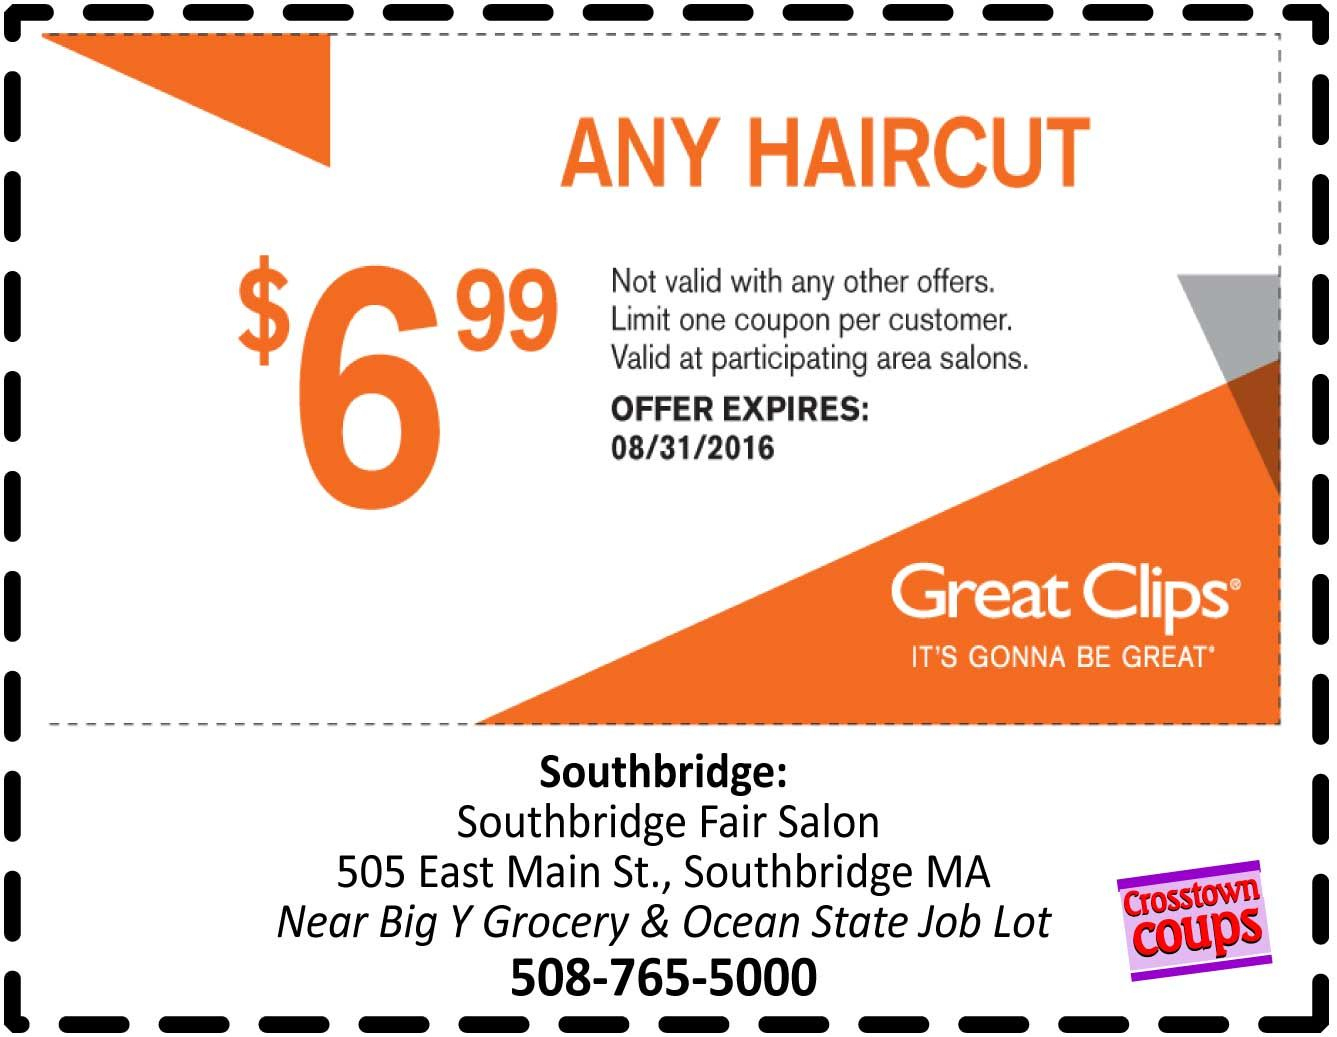 27 Great Clips Free Haircut Coupon | Hairstyles Ideas - Supercuts Free Haircut Printable Coupon